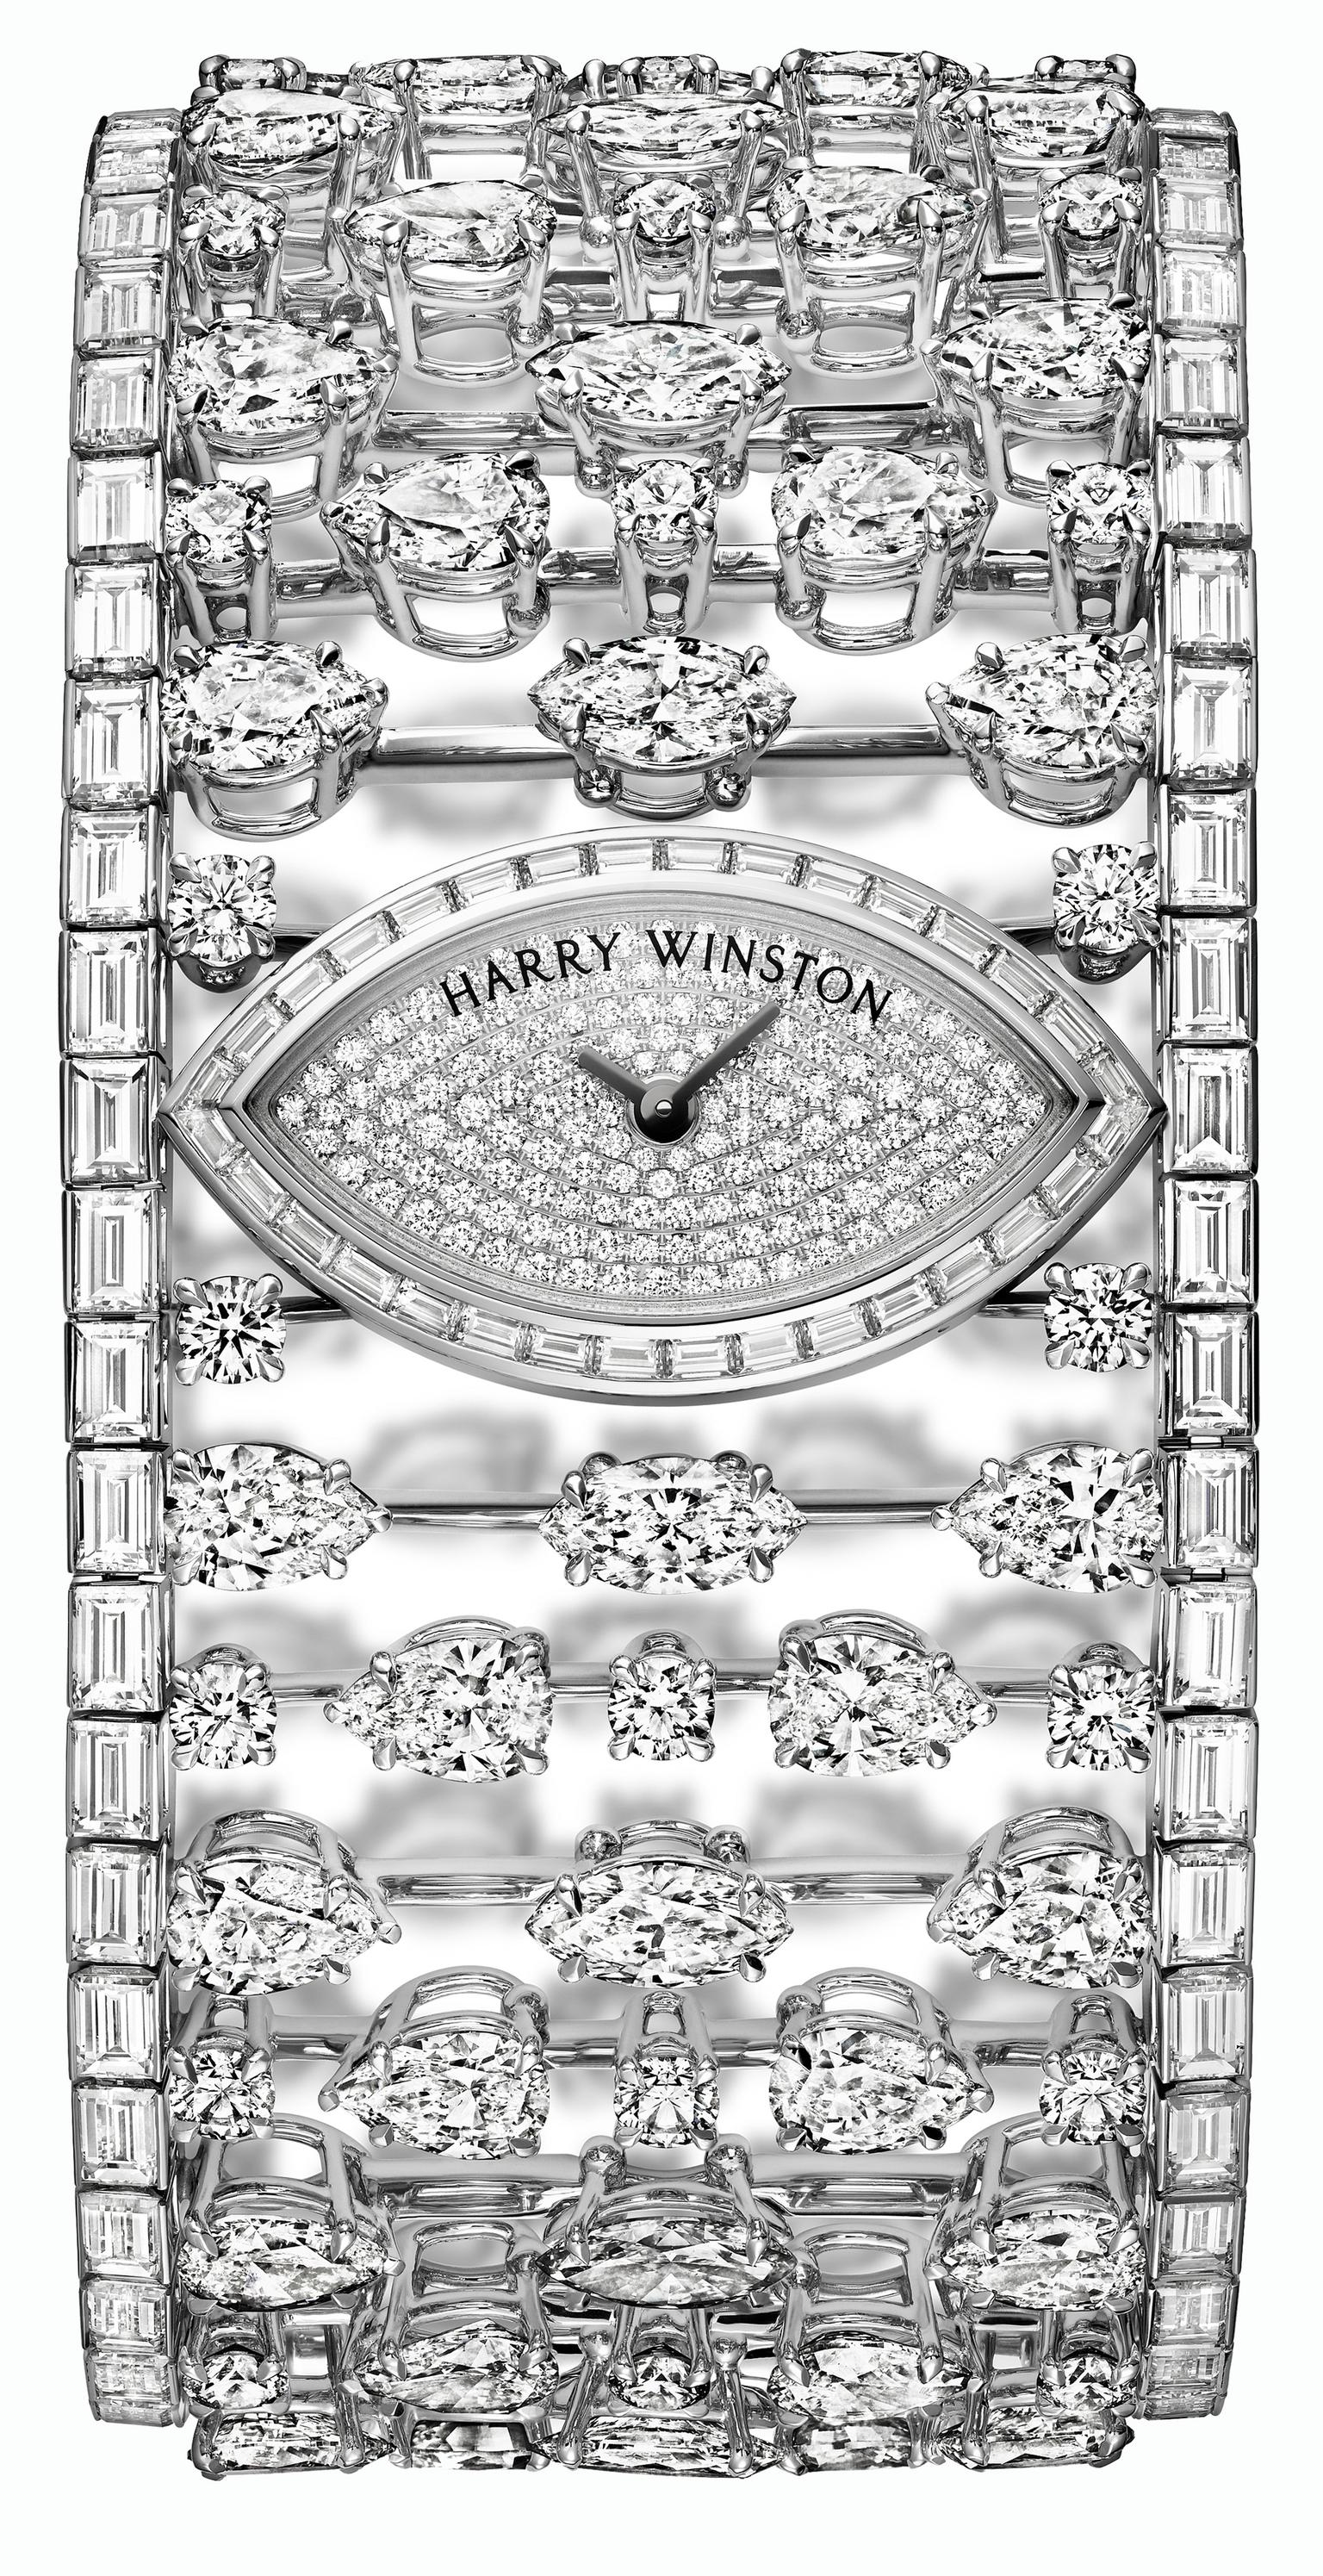 Harry Winston Mrs Winston high jewellery watch_20131115_Zoom